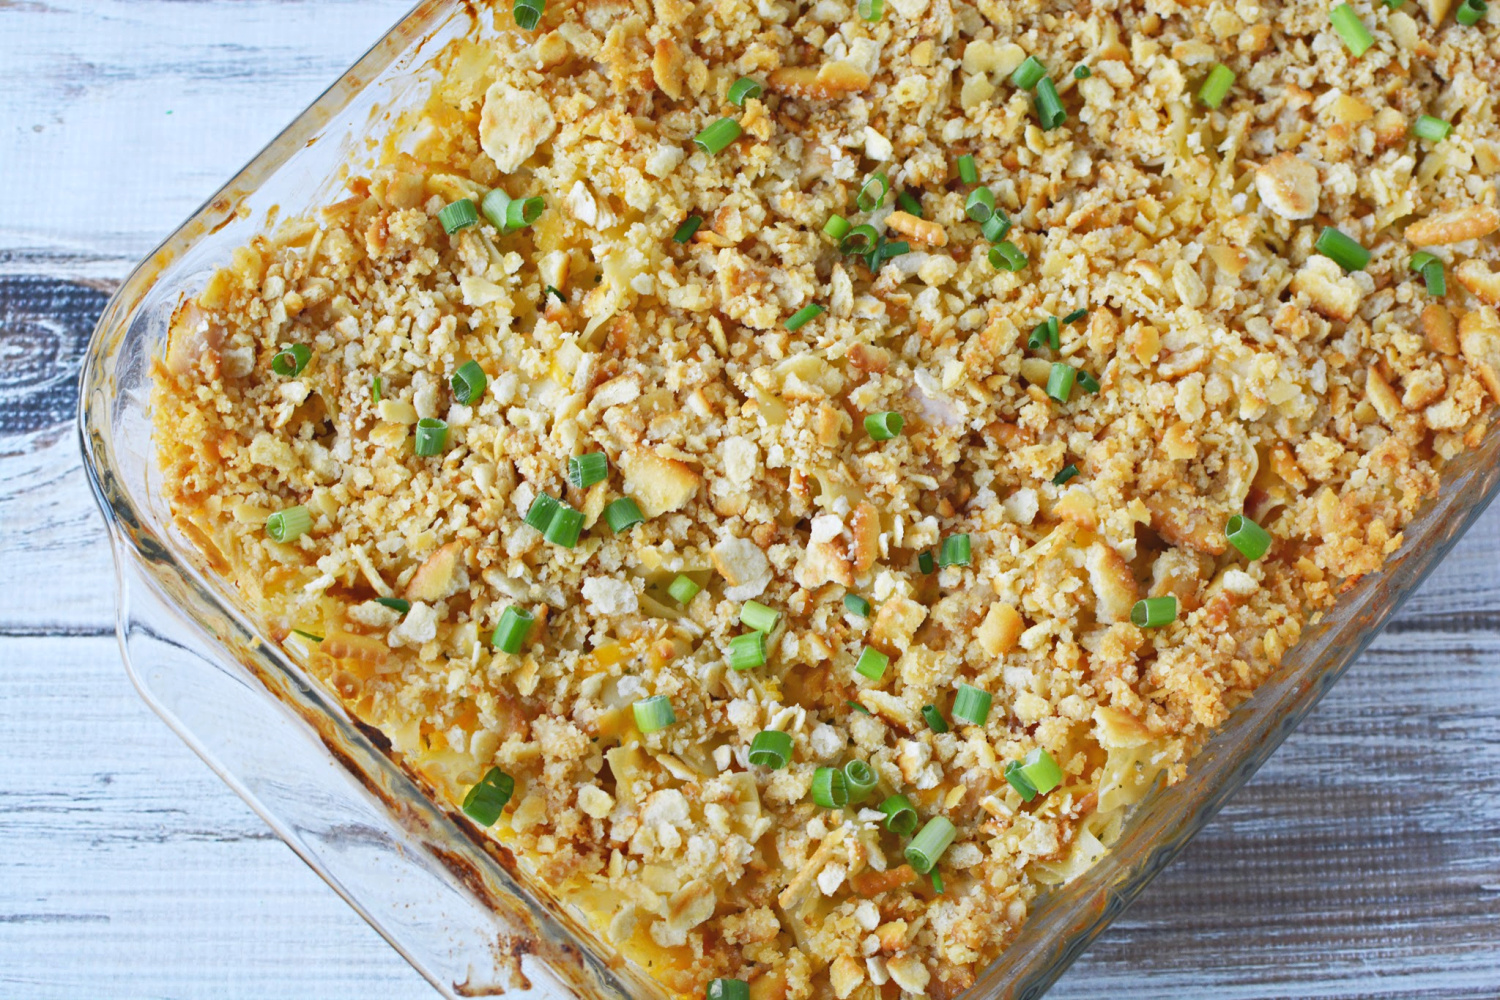 Easy Crack Chicken Casserole Recipe is a great dinner dish for the whole family.